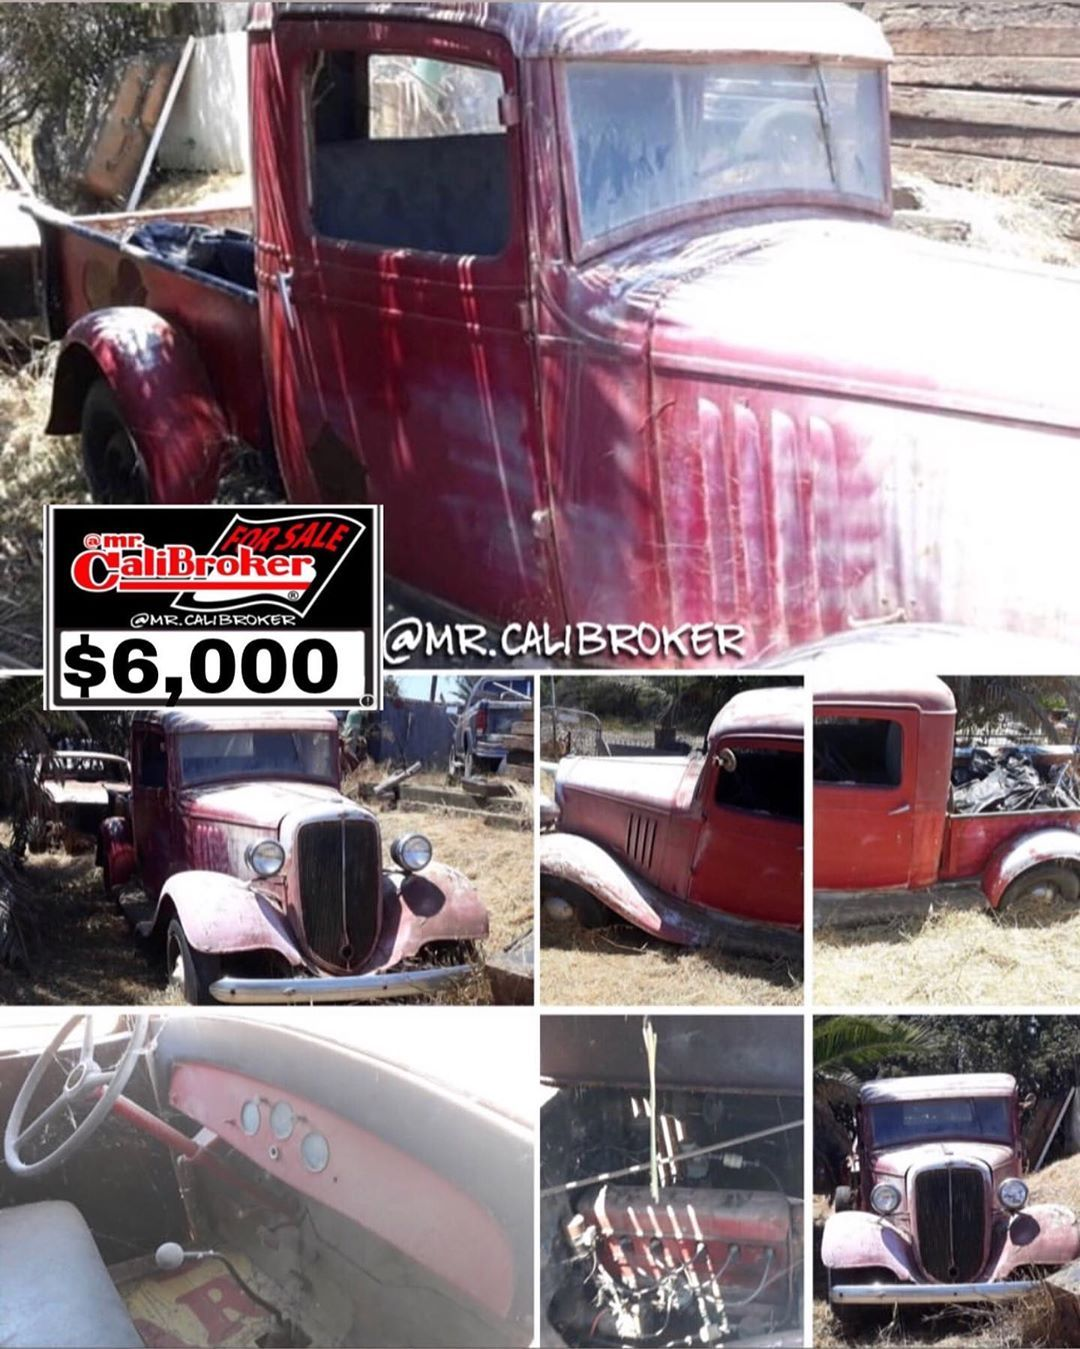 mr.calibroker 4sale forsale 1933 Chevy truck Good